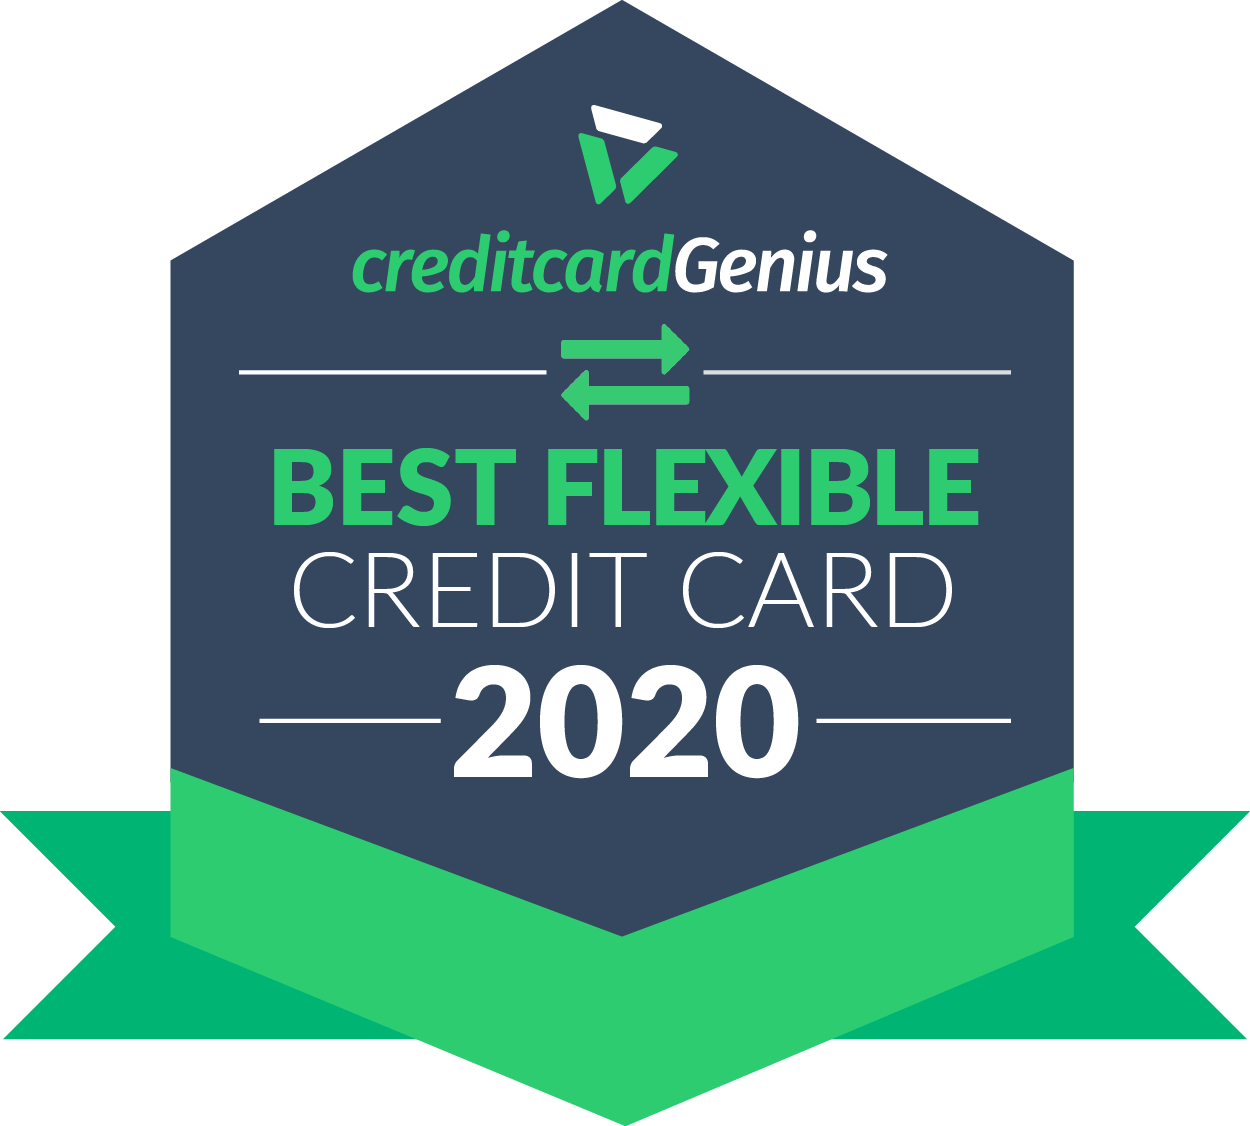 Best flexible rewards credit card in Canada for 2020 award seal